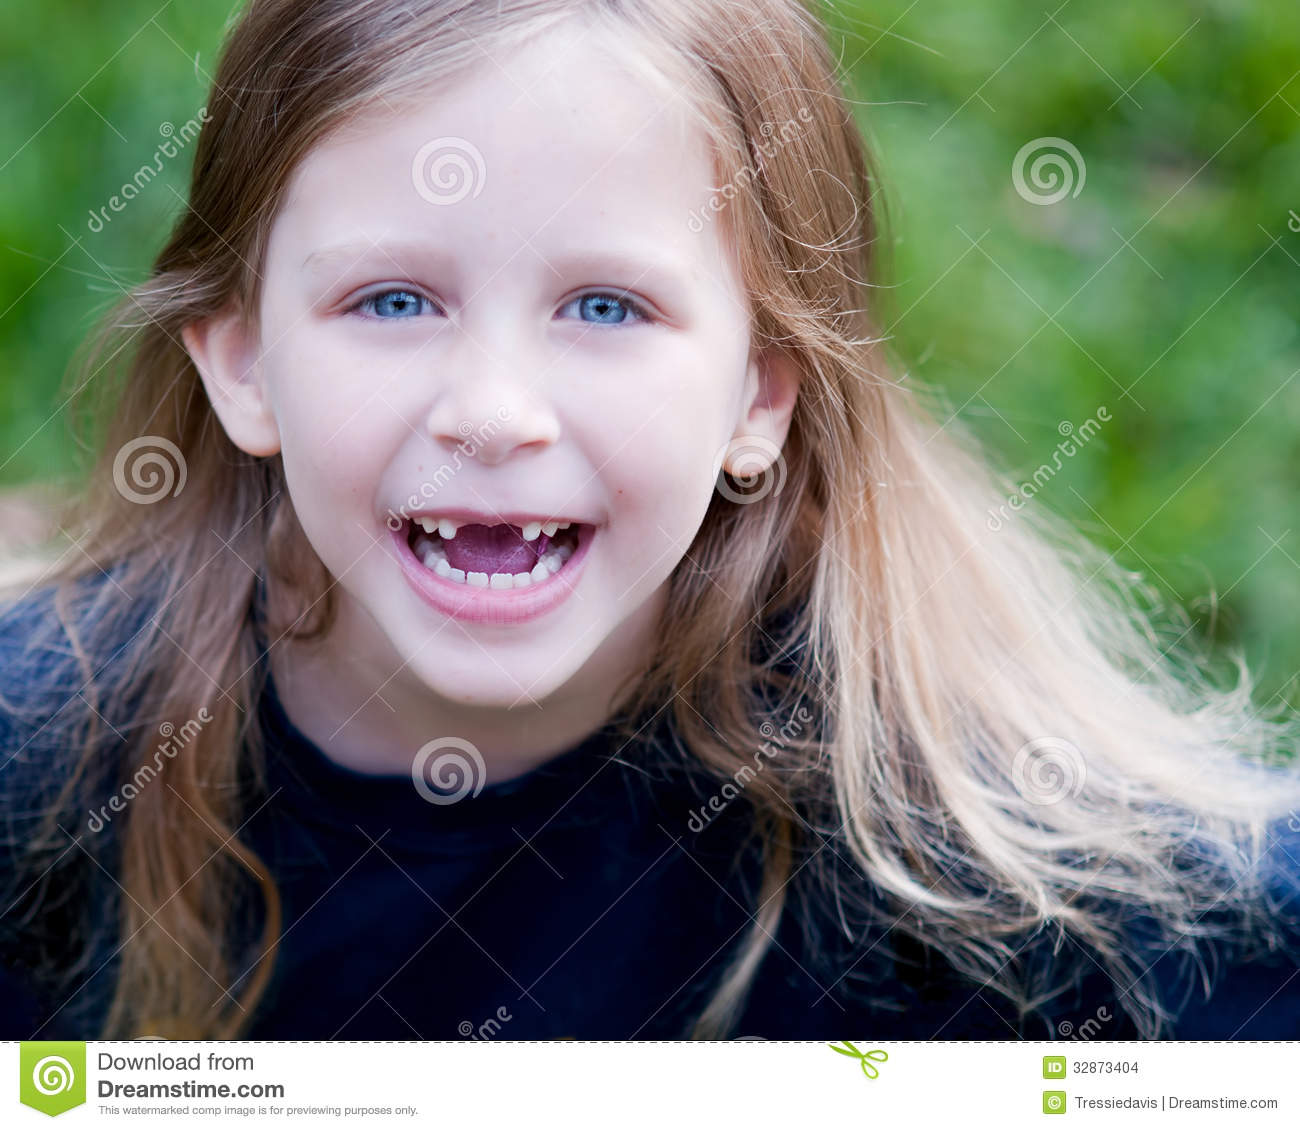 Little Girl Missing Two Front Teeth Stock Images - Image ...